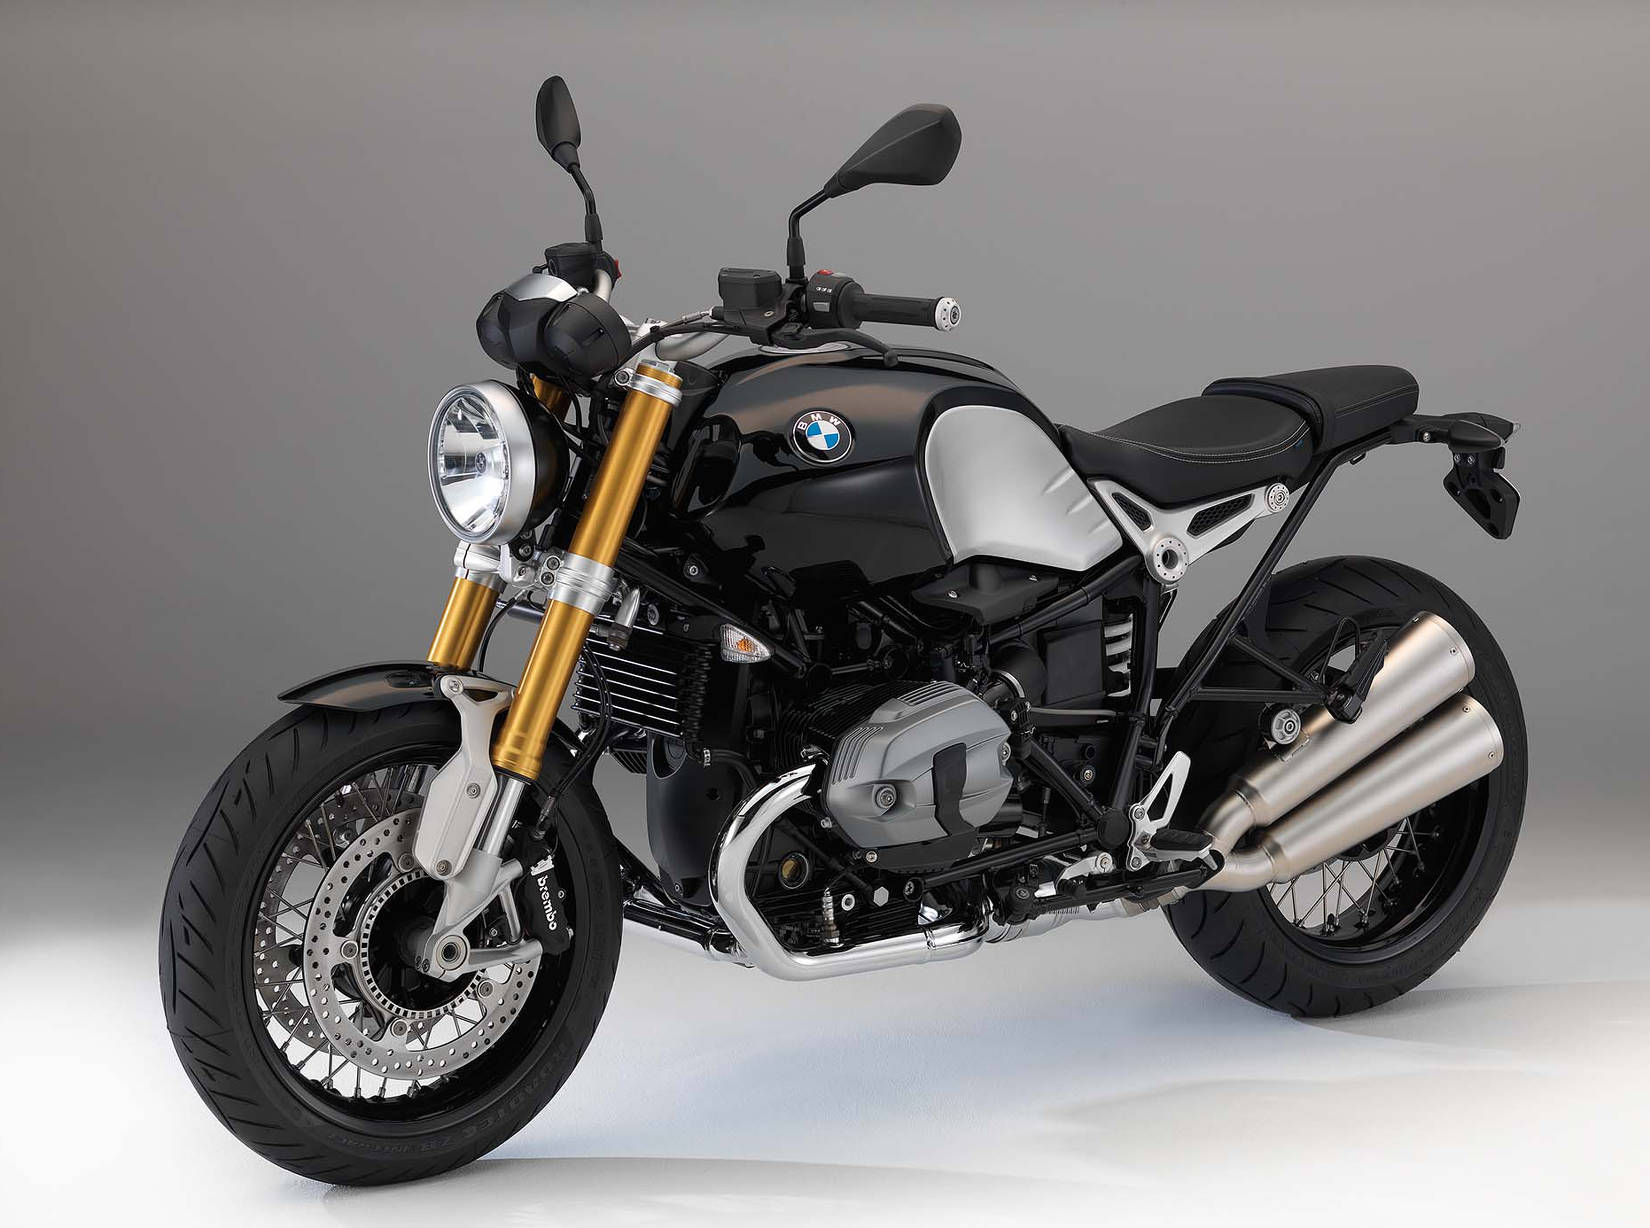 2018 Indian Motorcycle Rumors >> BMW Unveils the R nineT: The Retro Standard You Have Been Waiting For? (With Video ...